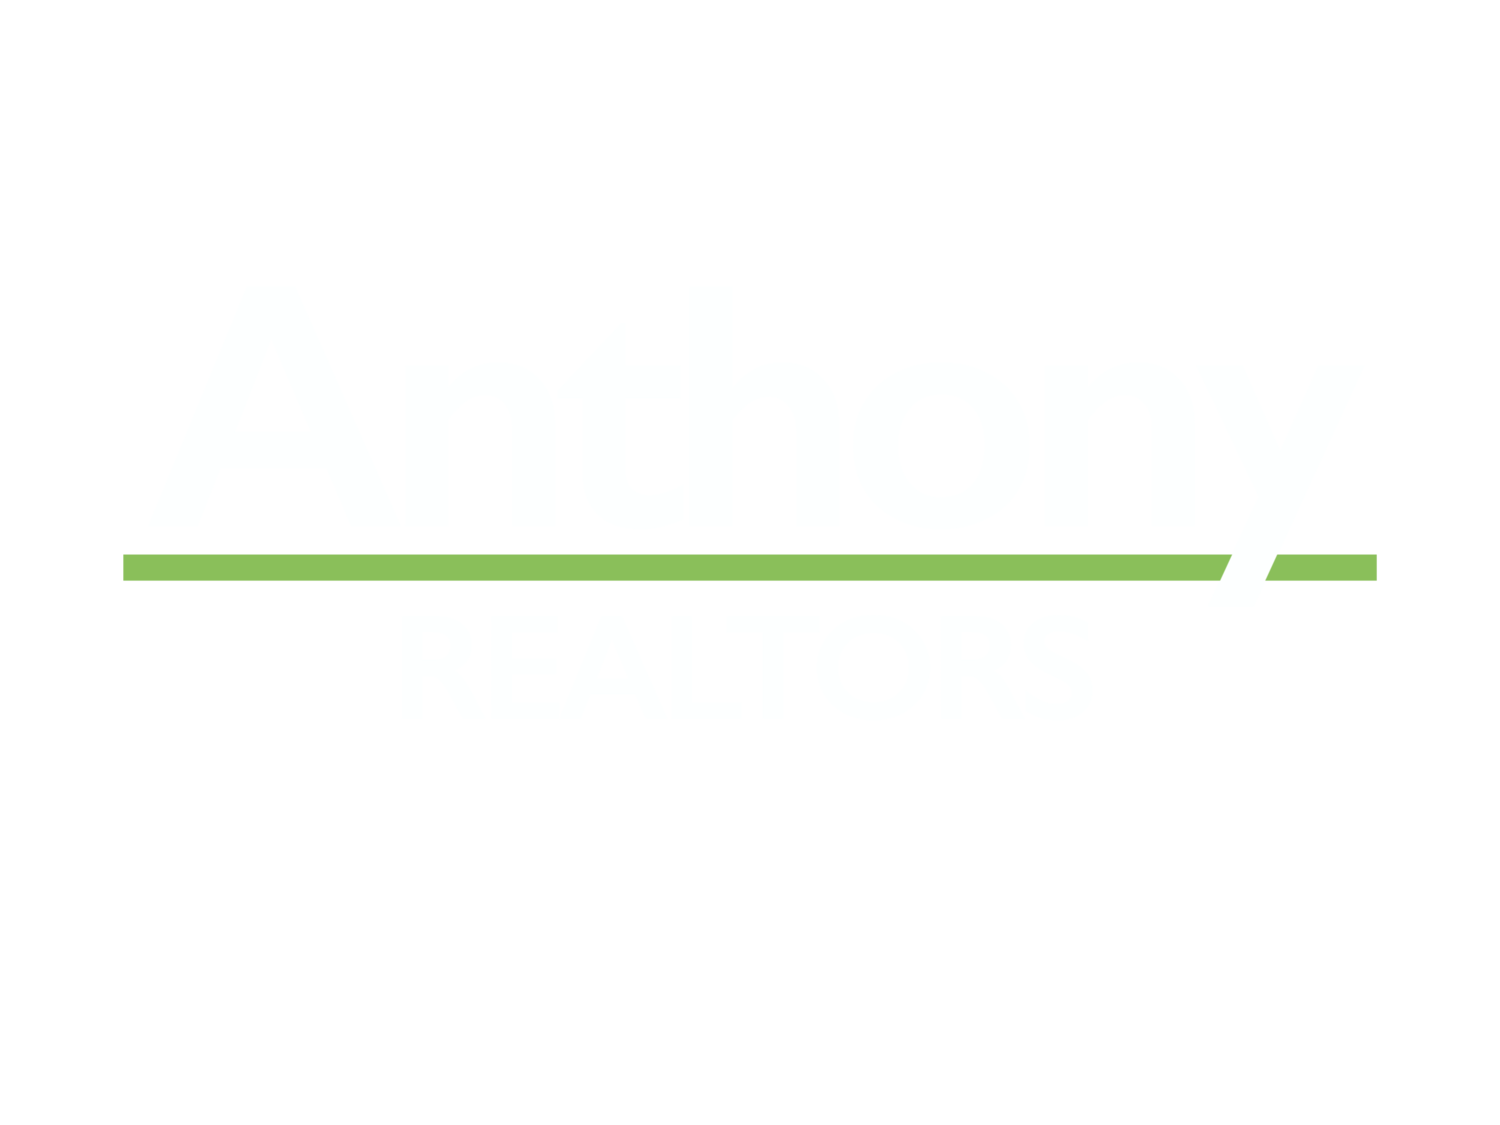 Anthony REALTORS